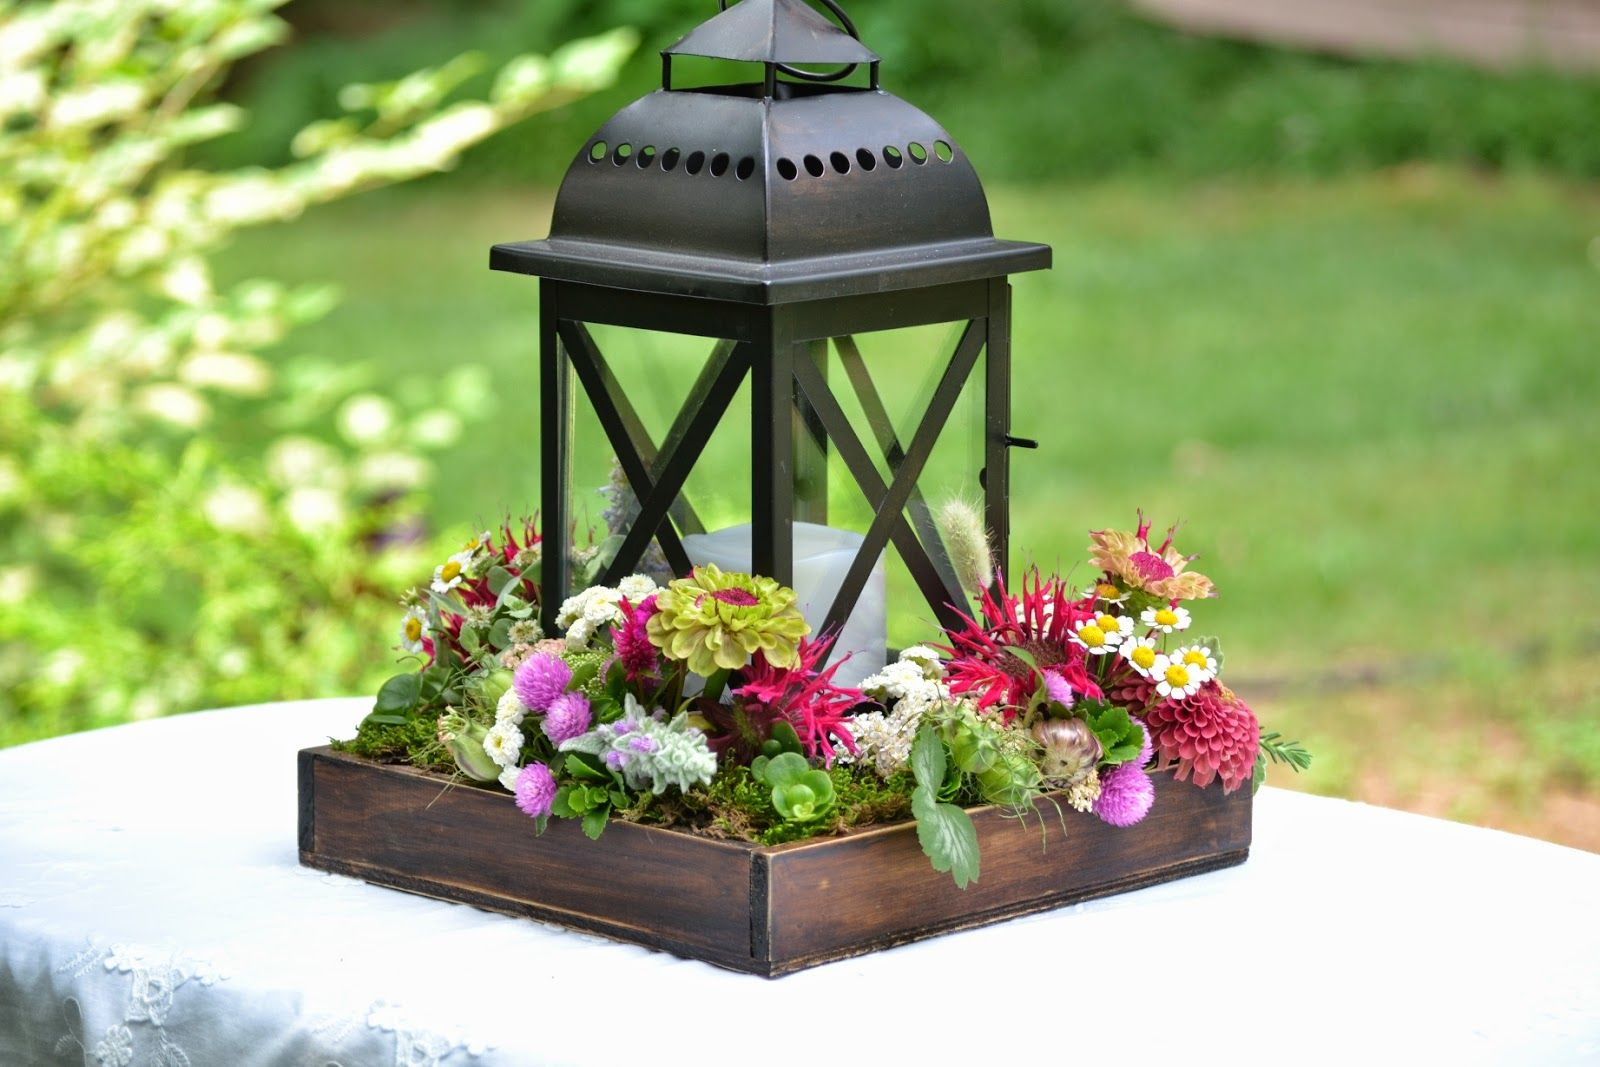 This is quite pretty a lantern sitting inside low